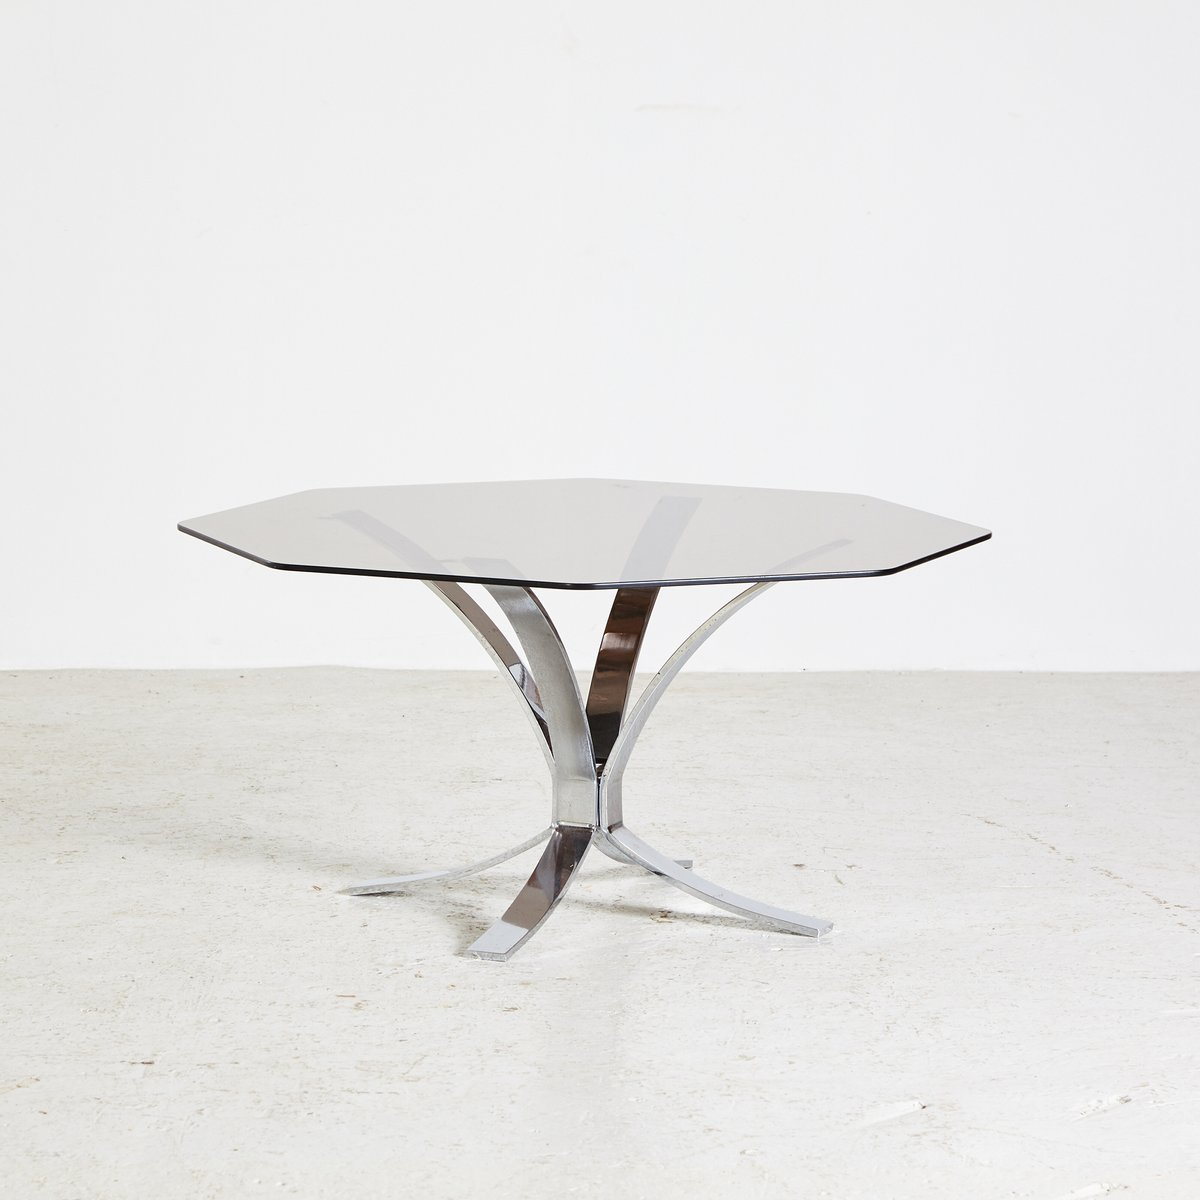 Vintage 1970s Octagonal With Top Glass Smoked Sale Table For Coffee r0wvxr